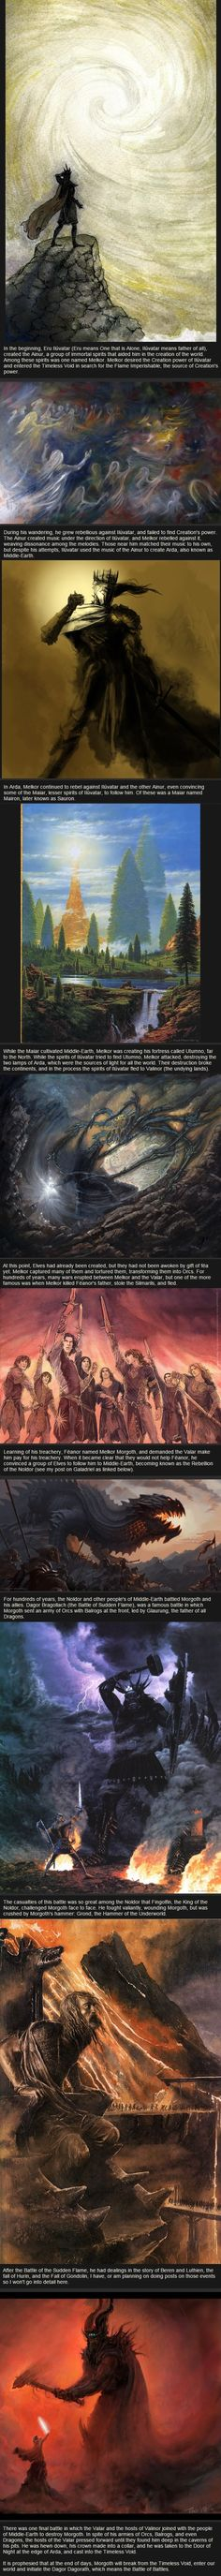 Relatively Unknown Lord of the Rings Facts - Morgoth<<<And it is also prophesied (since it left out the end) that Morgoth is finally destroyed by either Turin or Eonwe.